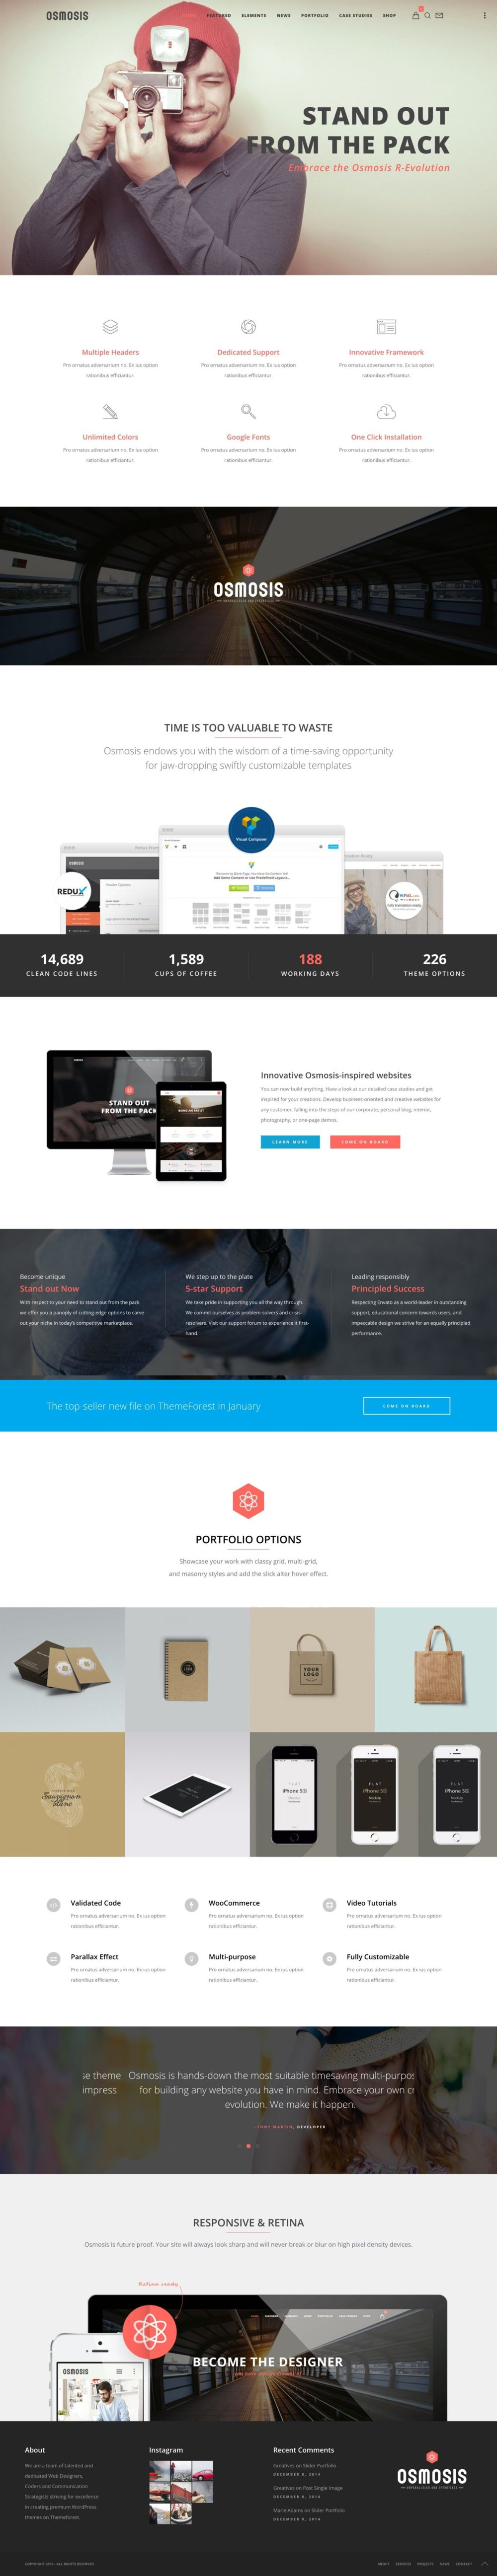 Greatives Premium WordPress themes, Osmosis theme